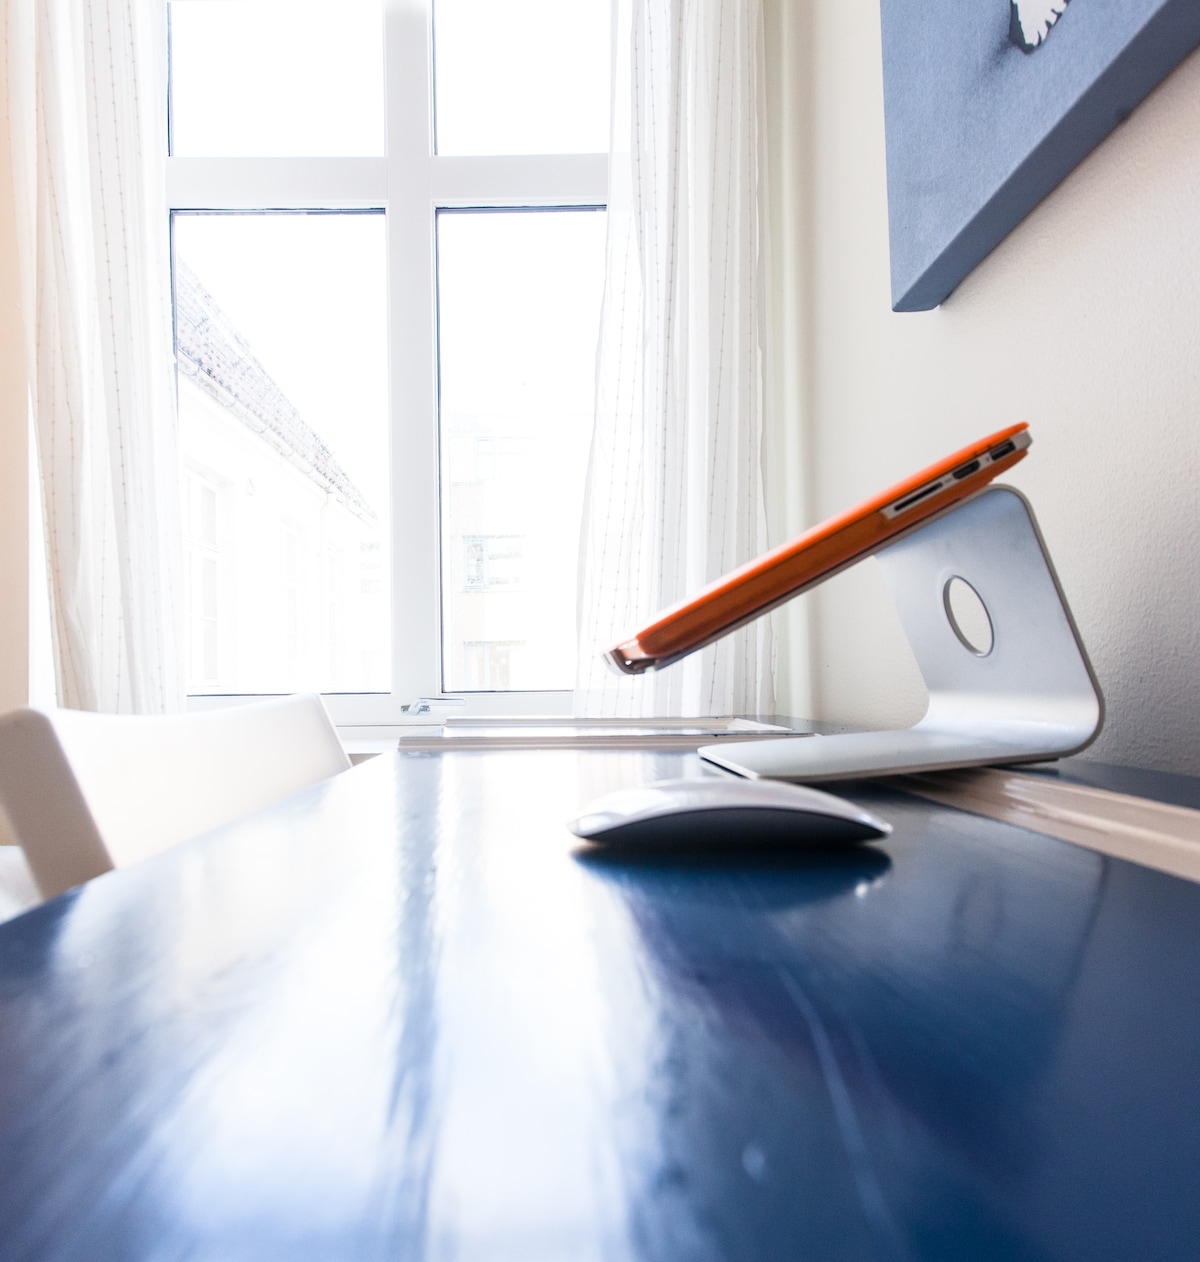 If you're up for a brief session of work – the desk is yours!